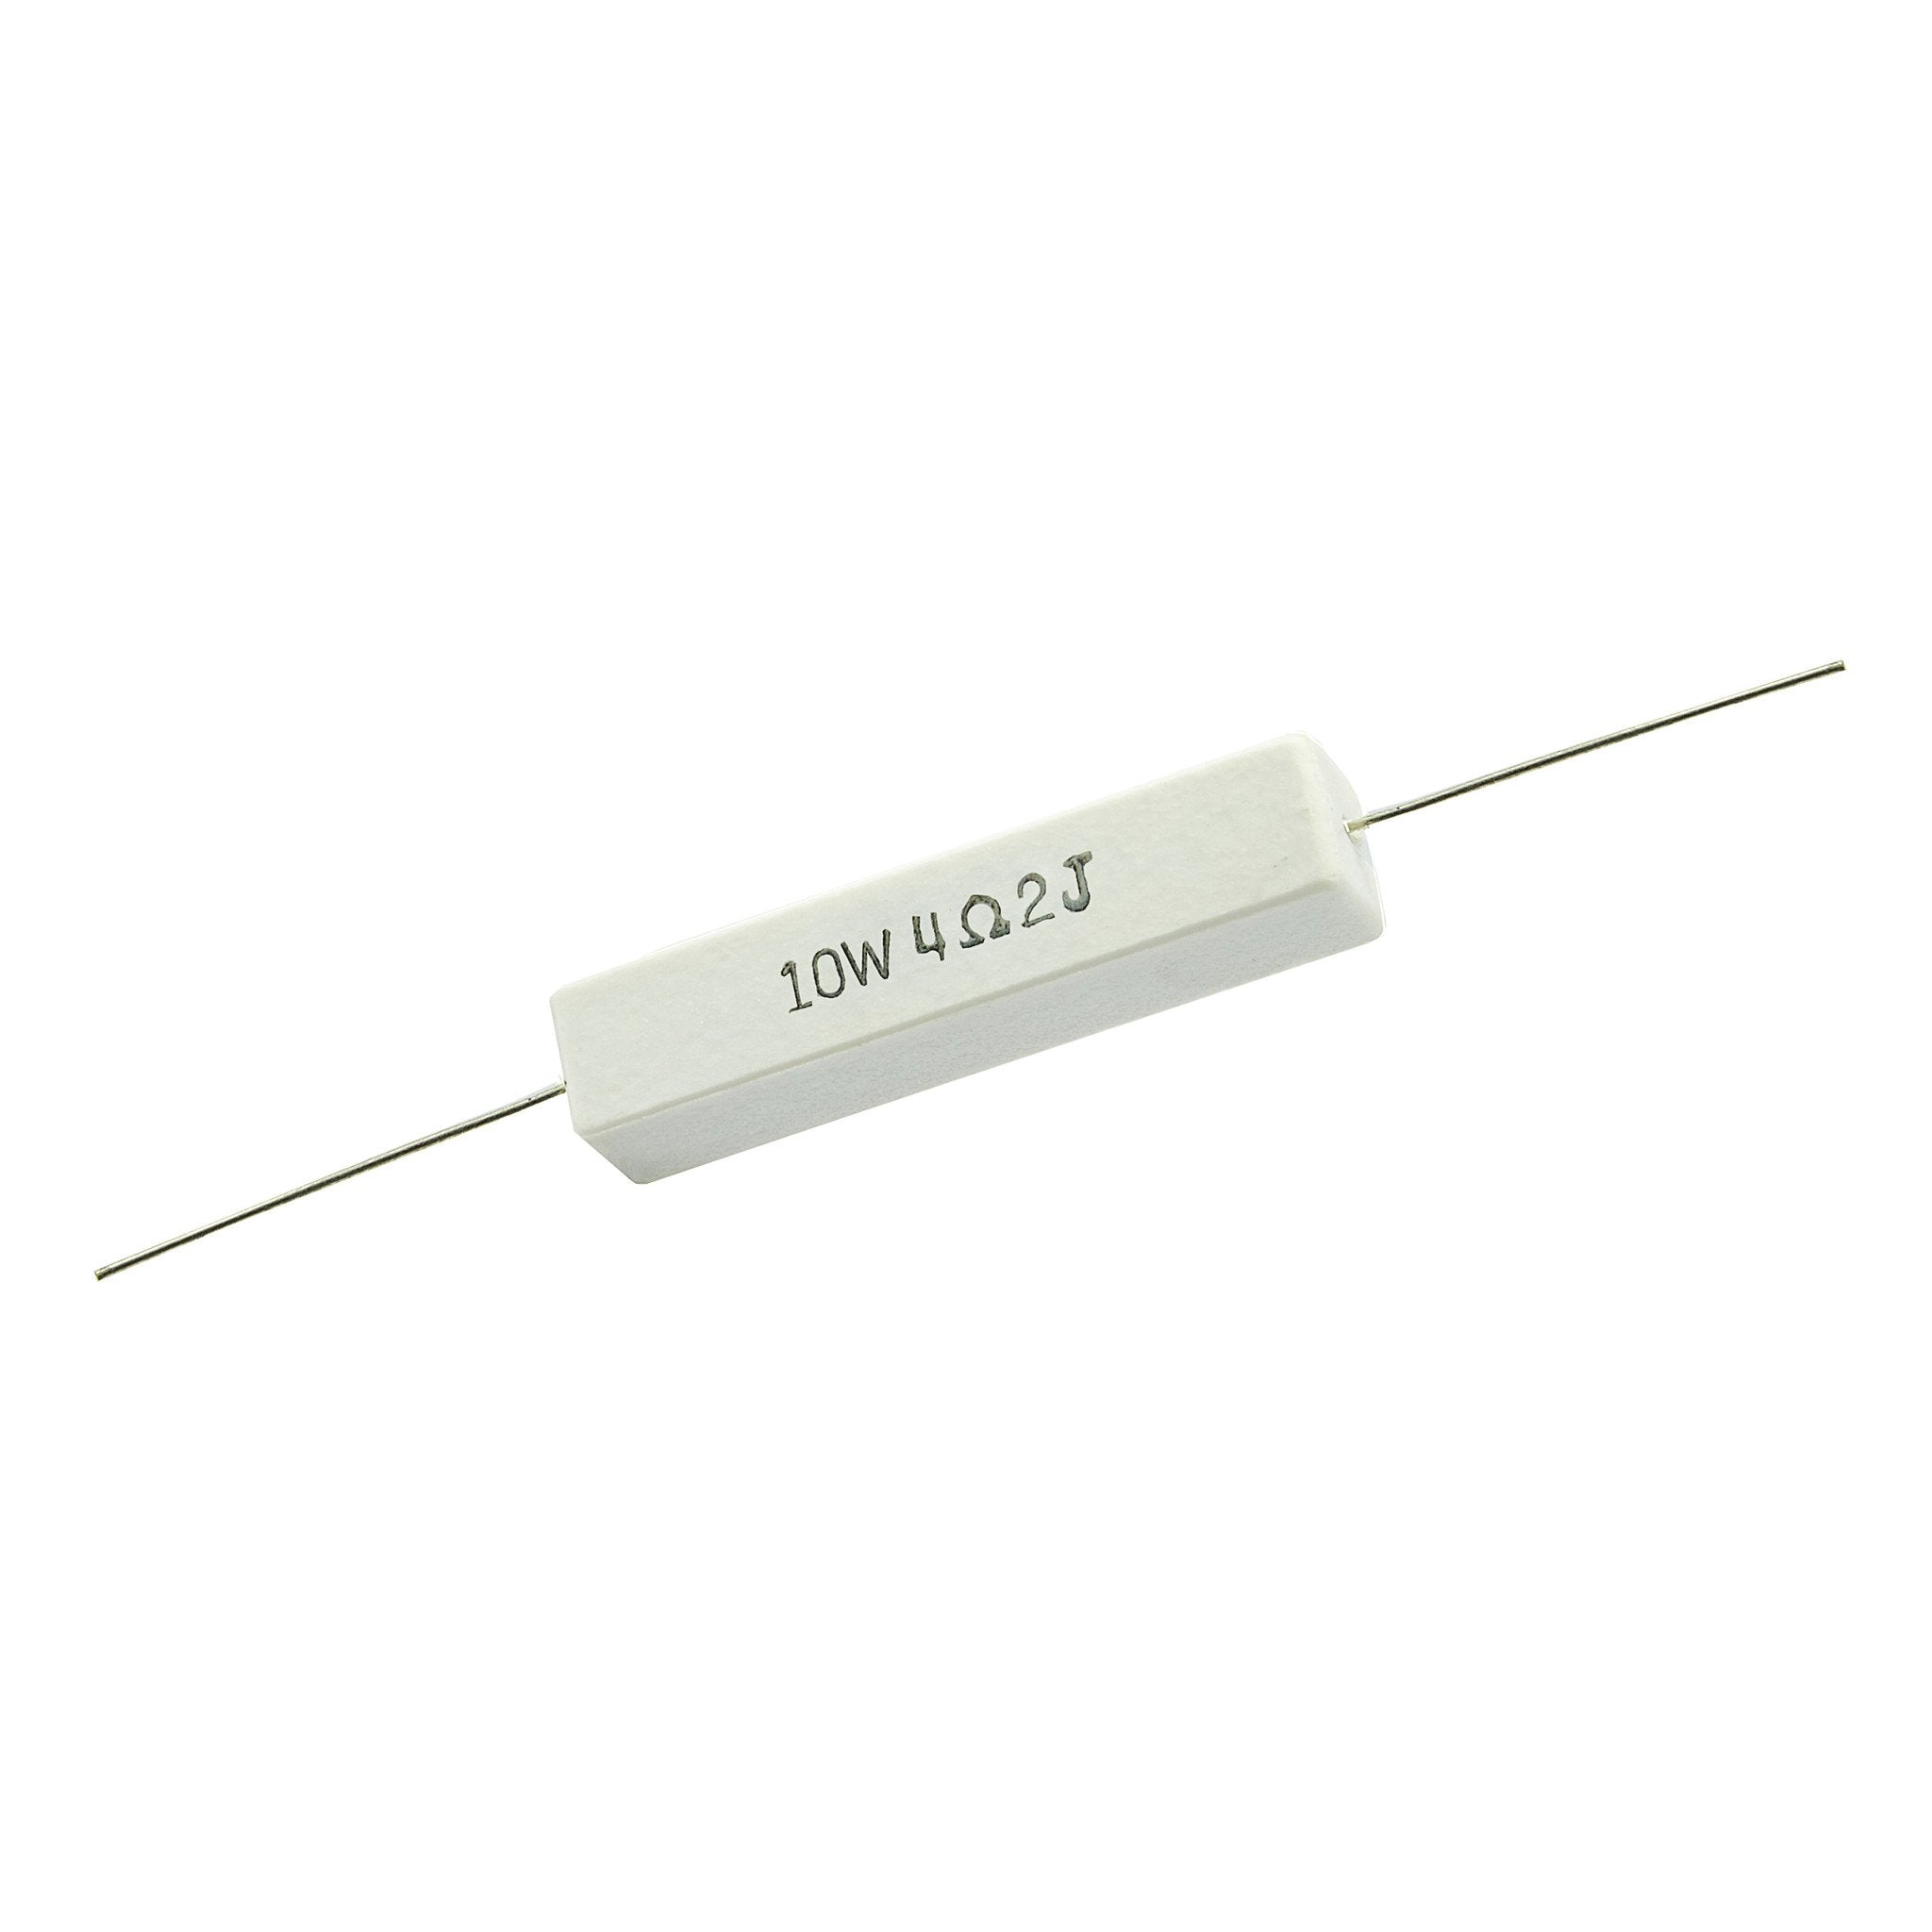 4.2 Ohm 10 Watt 5% Ceramic Wirewound Resistor - Willys-Hifi Ltd